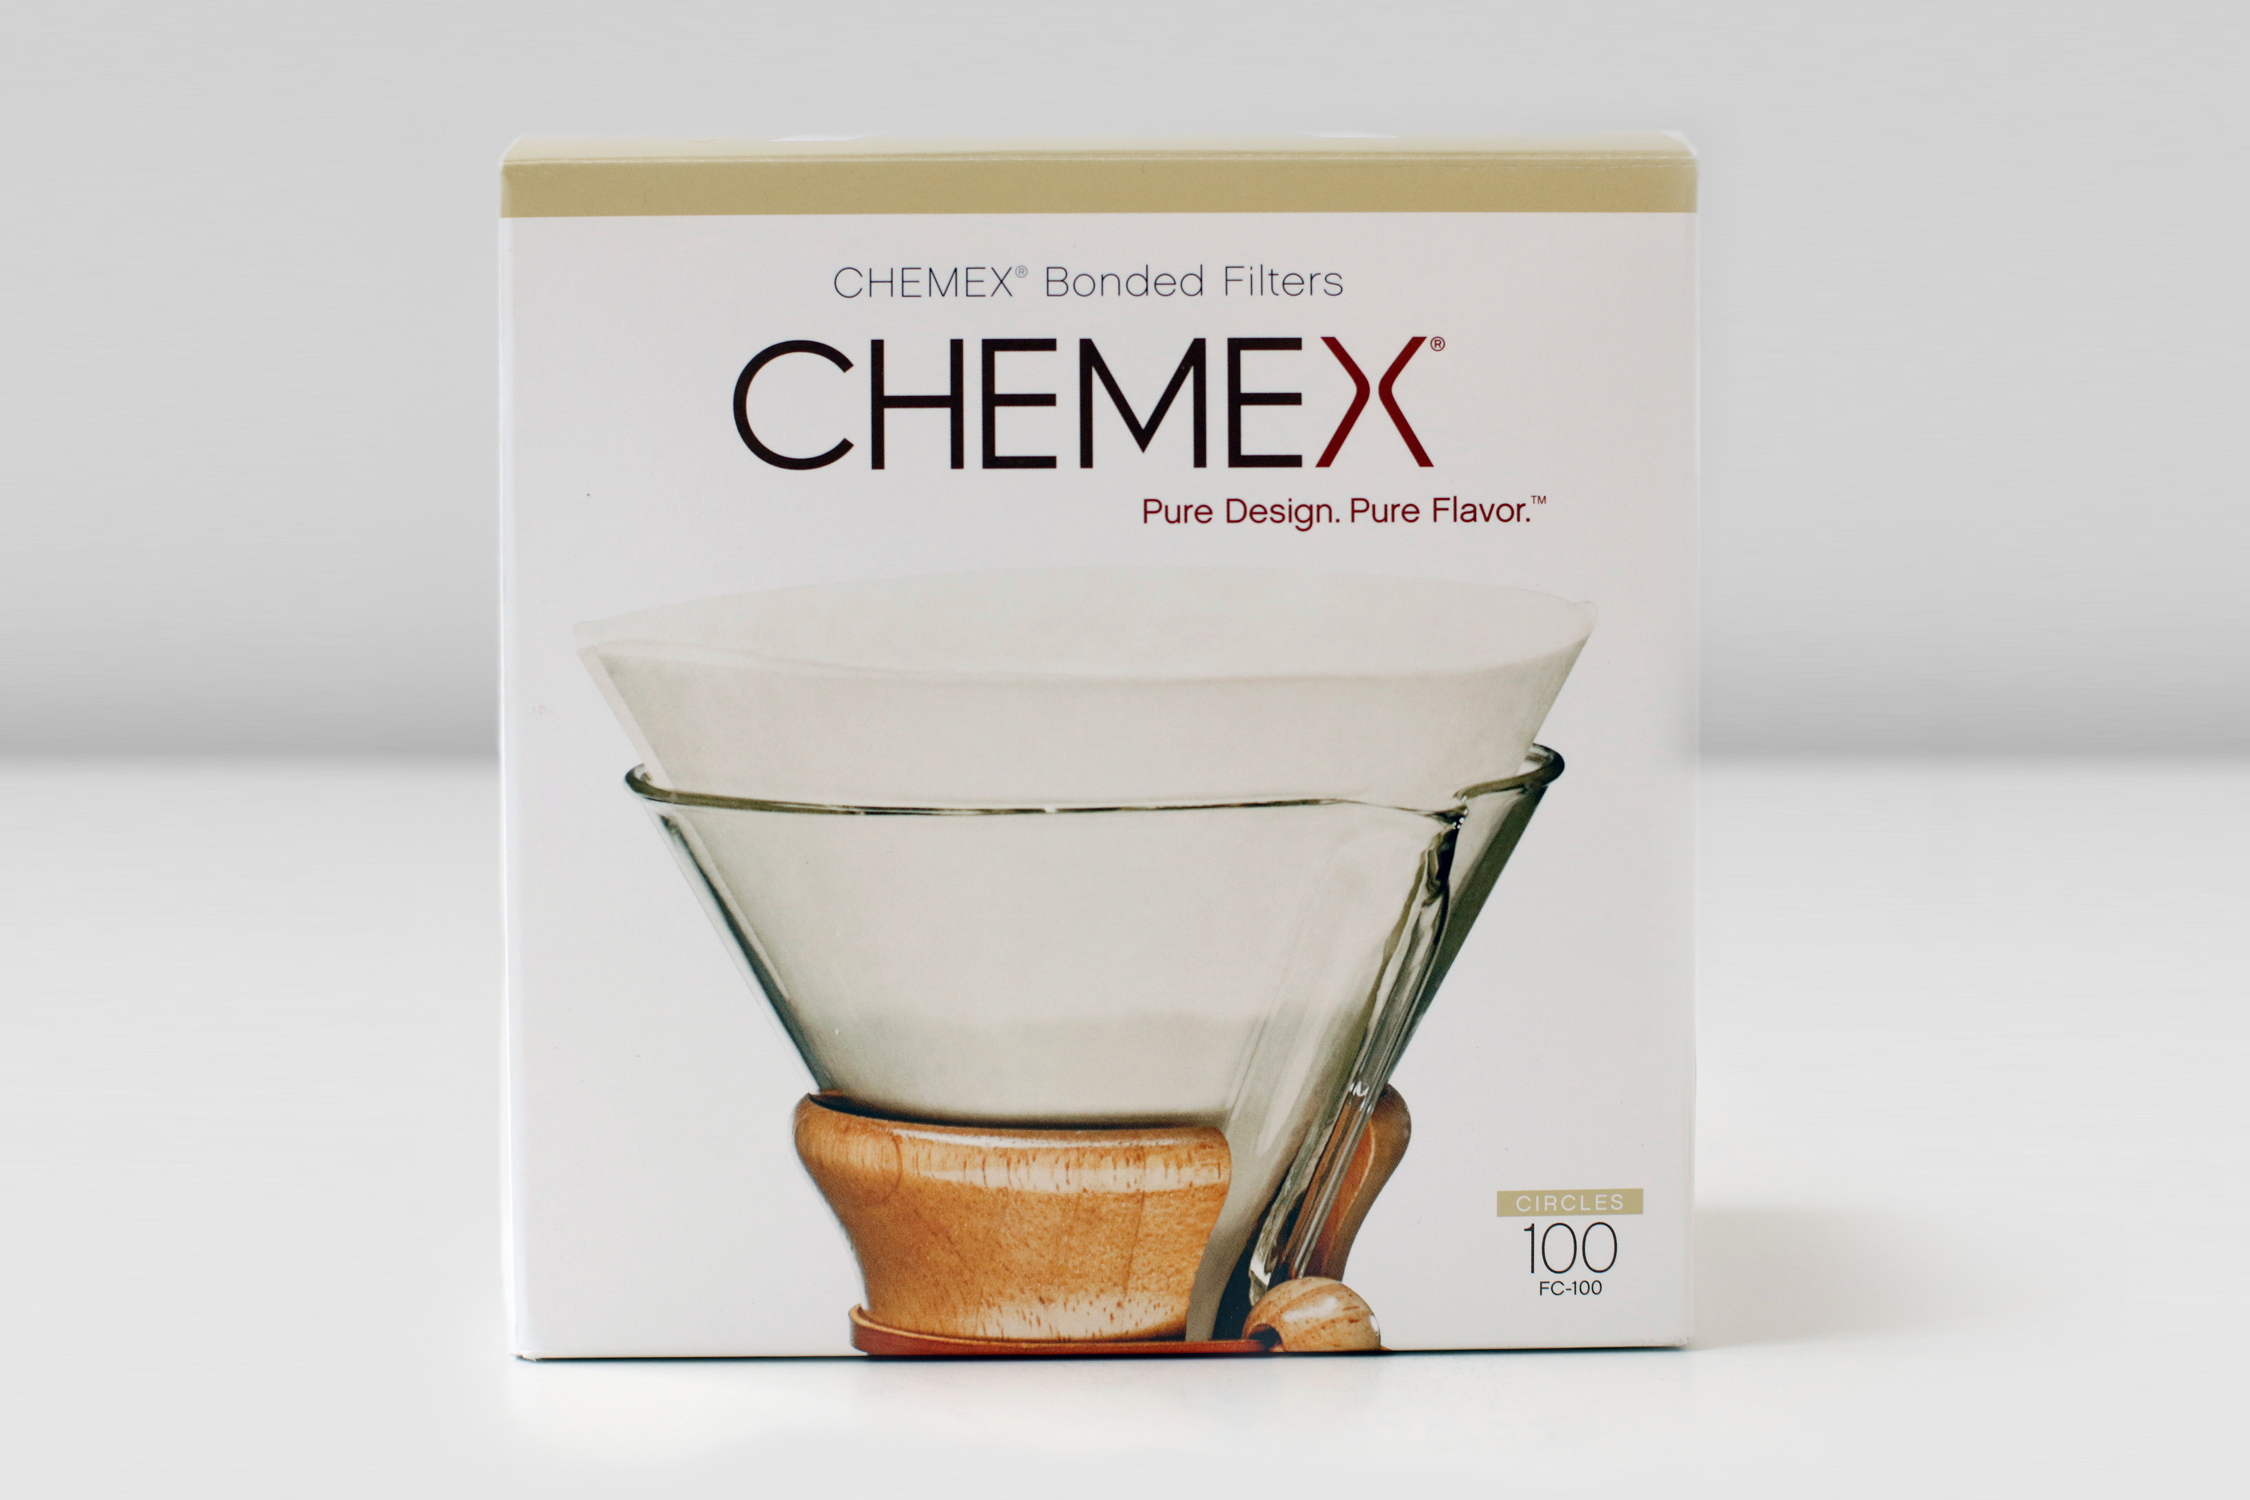 Chemex Coffee Maker Dishwasher Safe : Coffee Makers, Filters and Brewing Equipment - Caffe Nero Shop